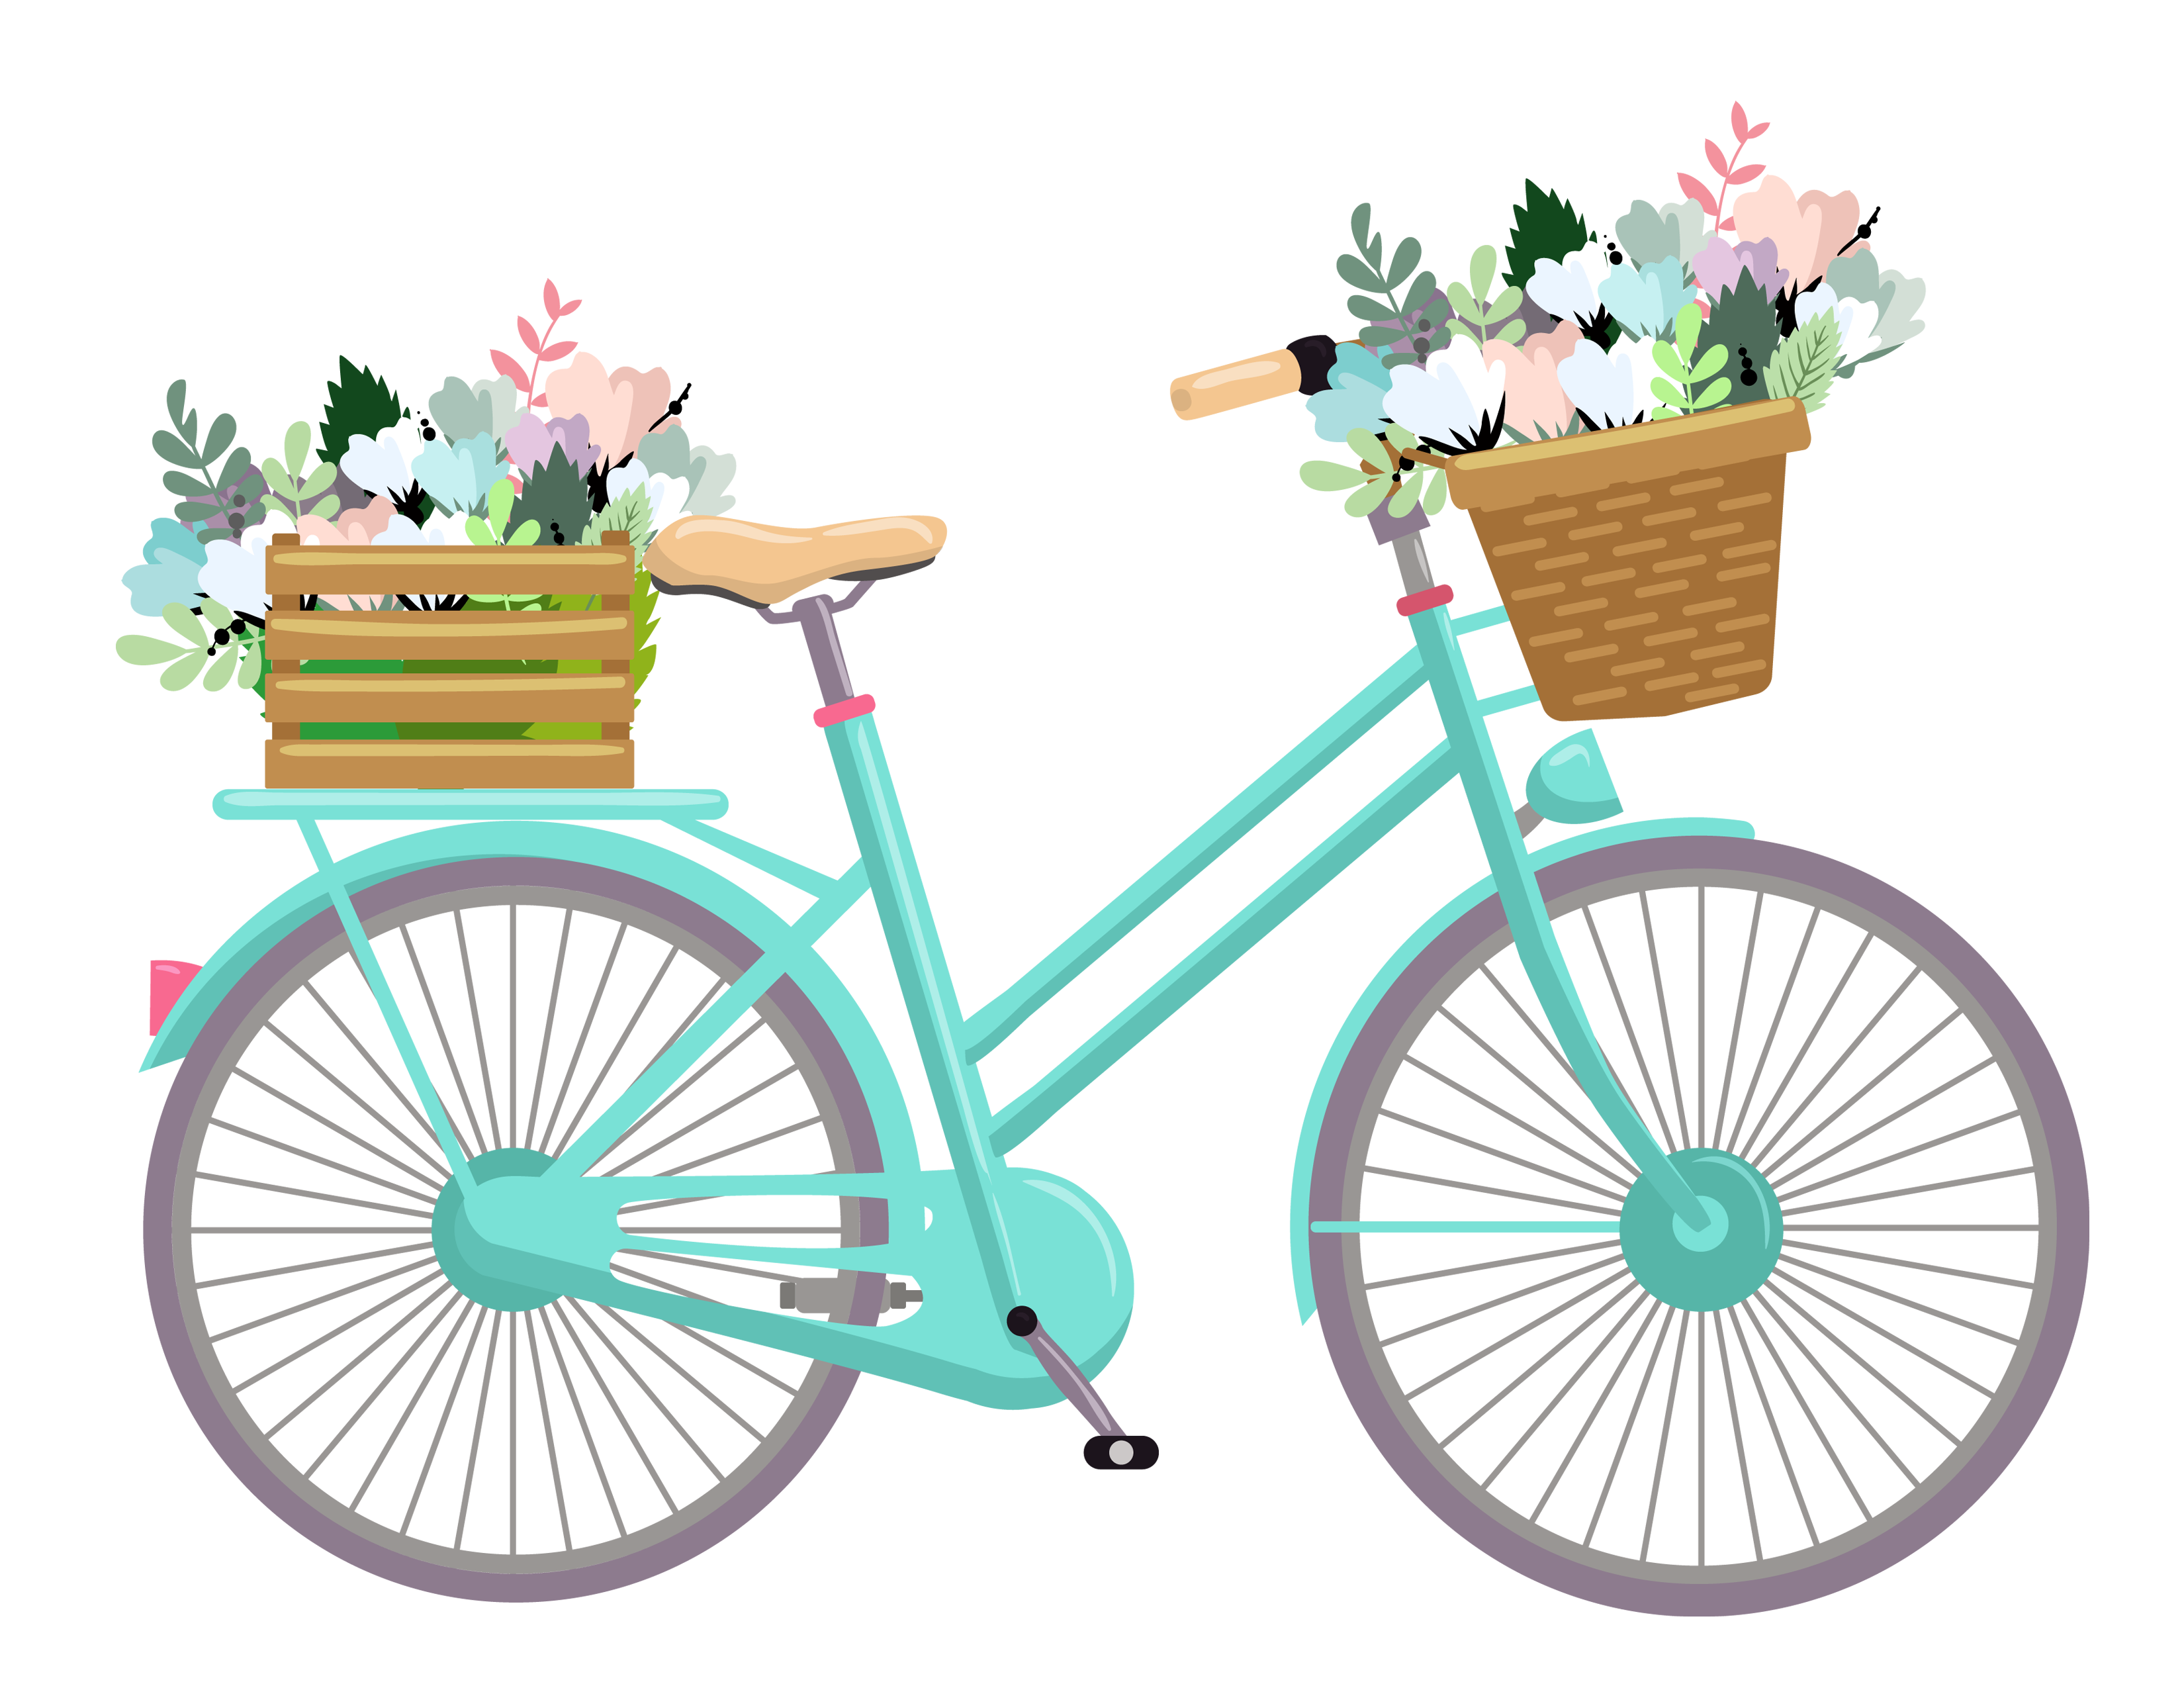 image library stock Www freeprettythingsforyou com wp. Bicycle clipart non living thing.